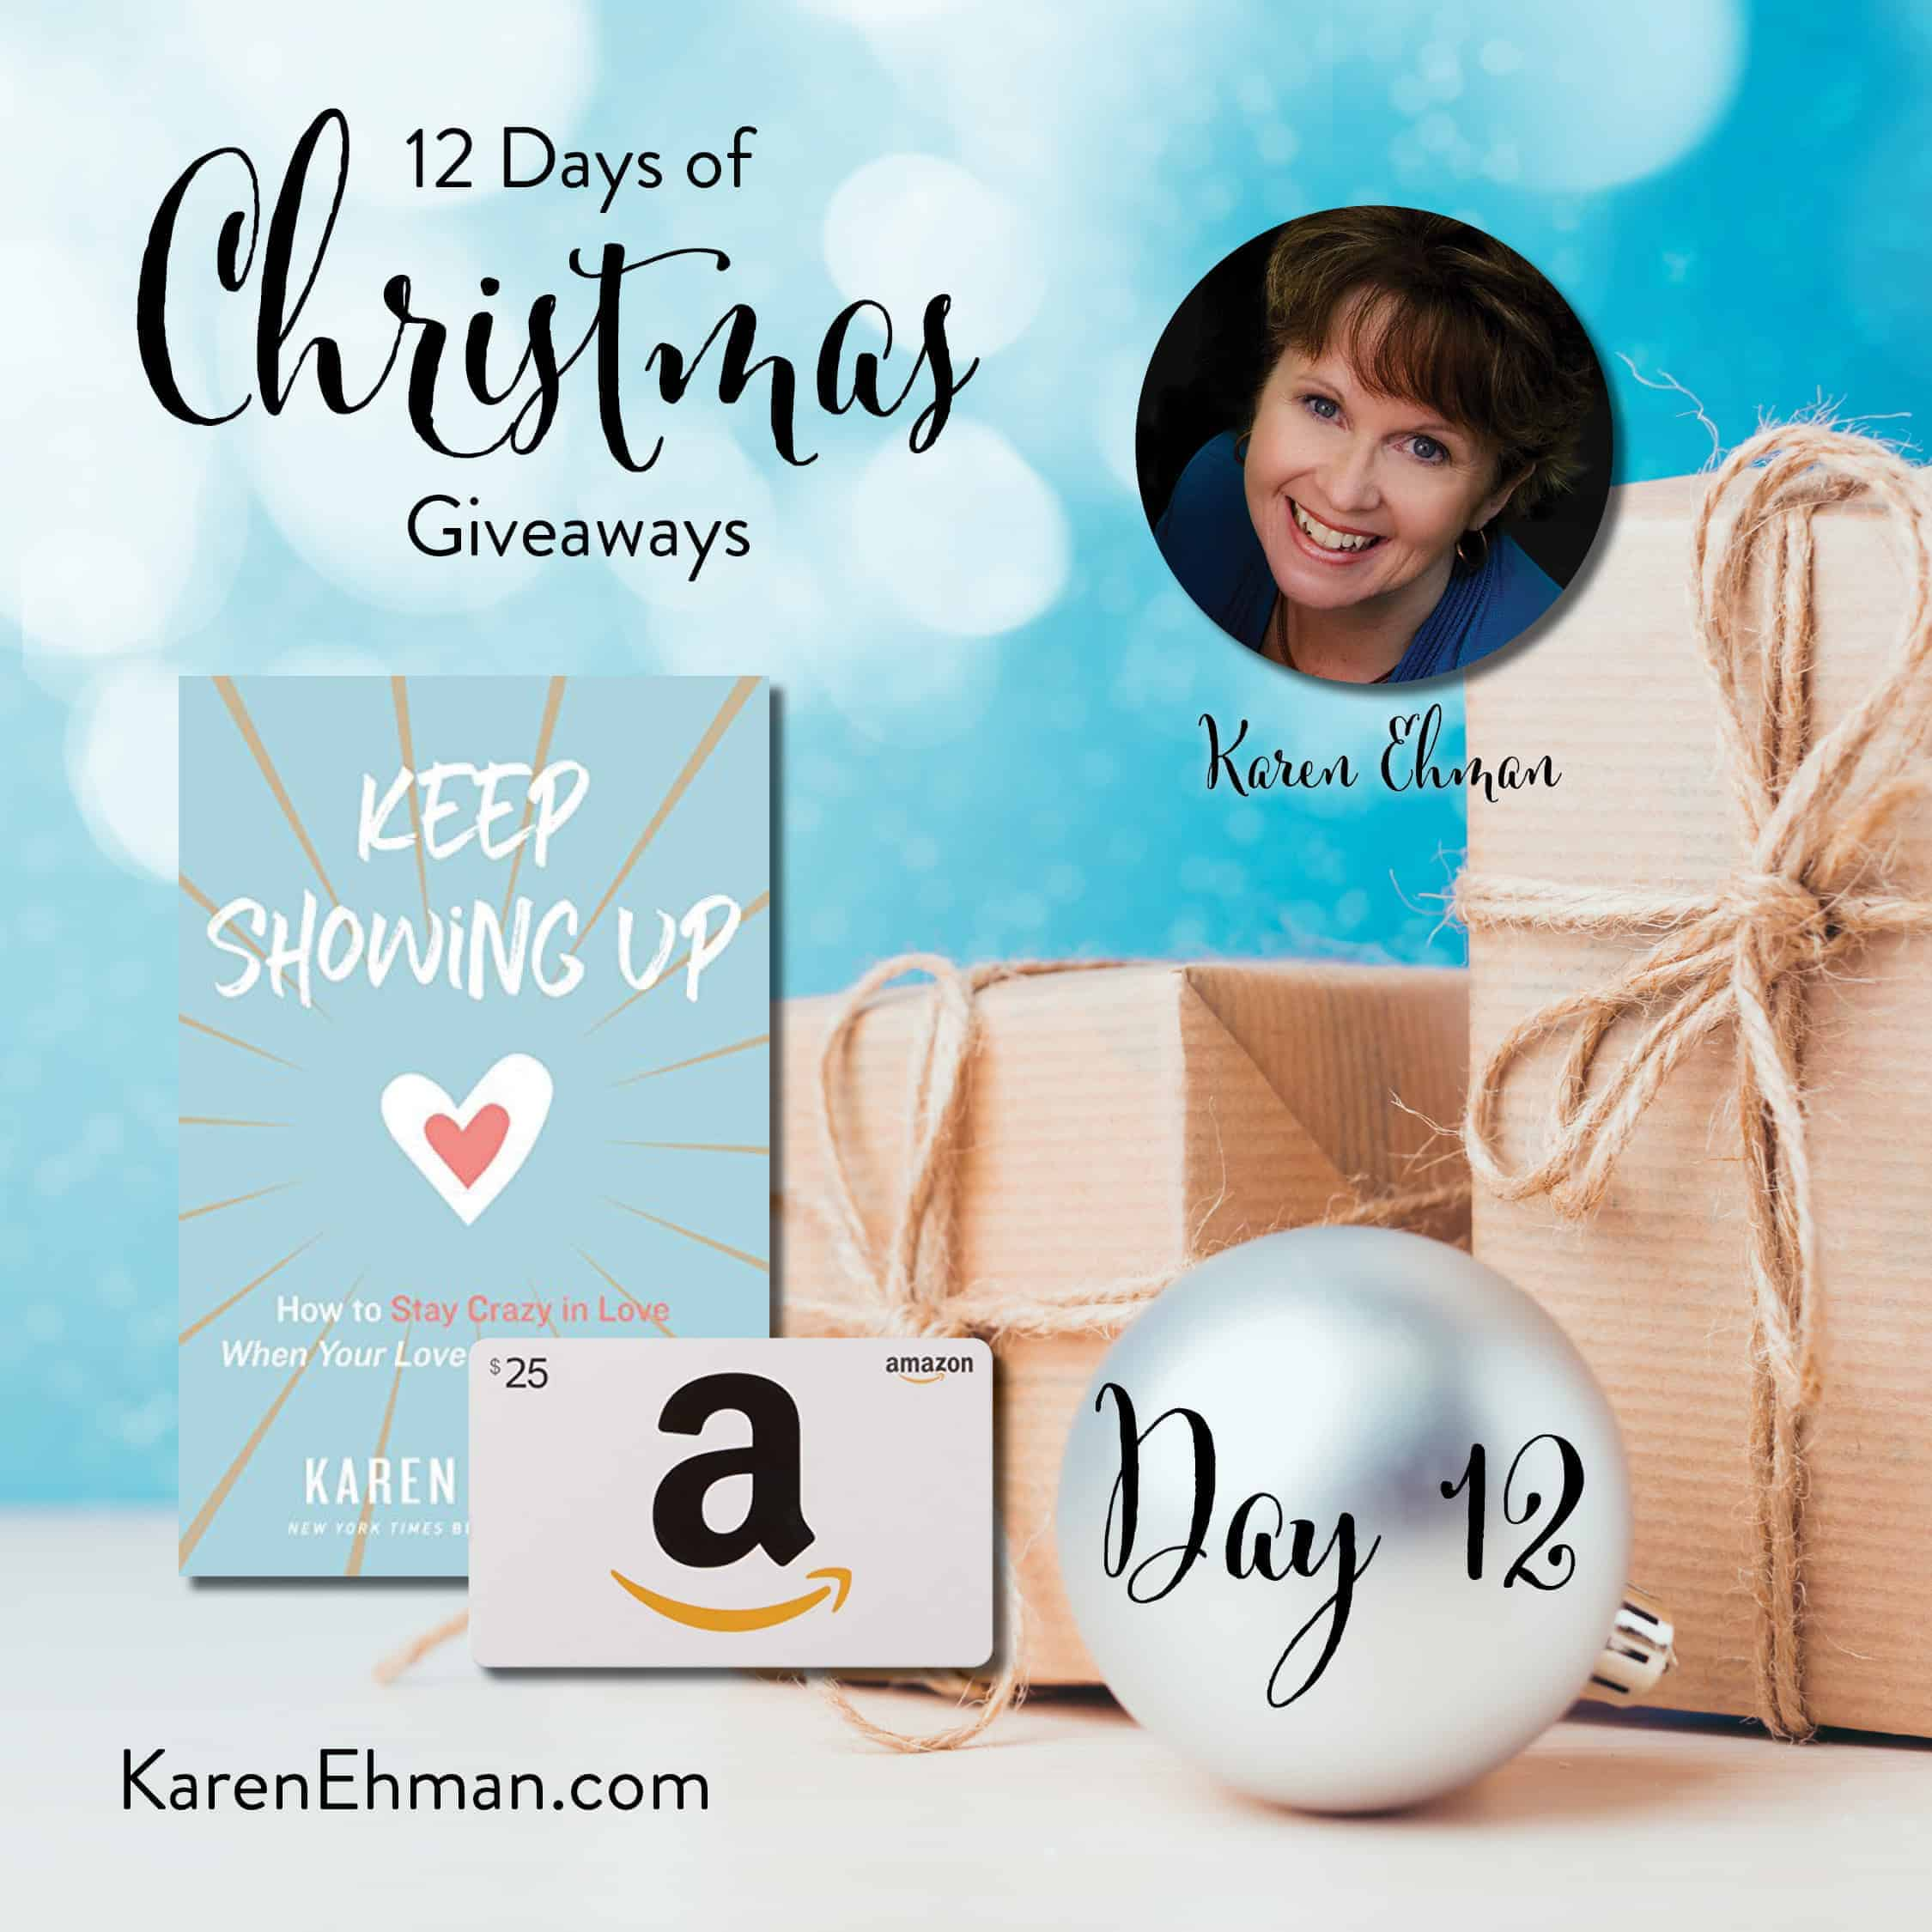 Day 12 of 12 Days of Christmas Giveaways (with Karen Ehman)